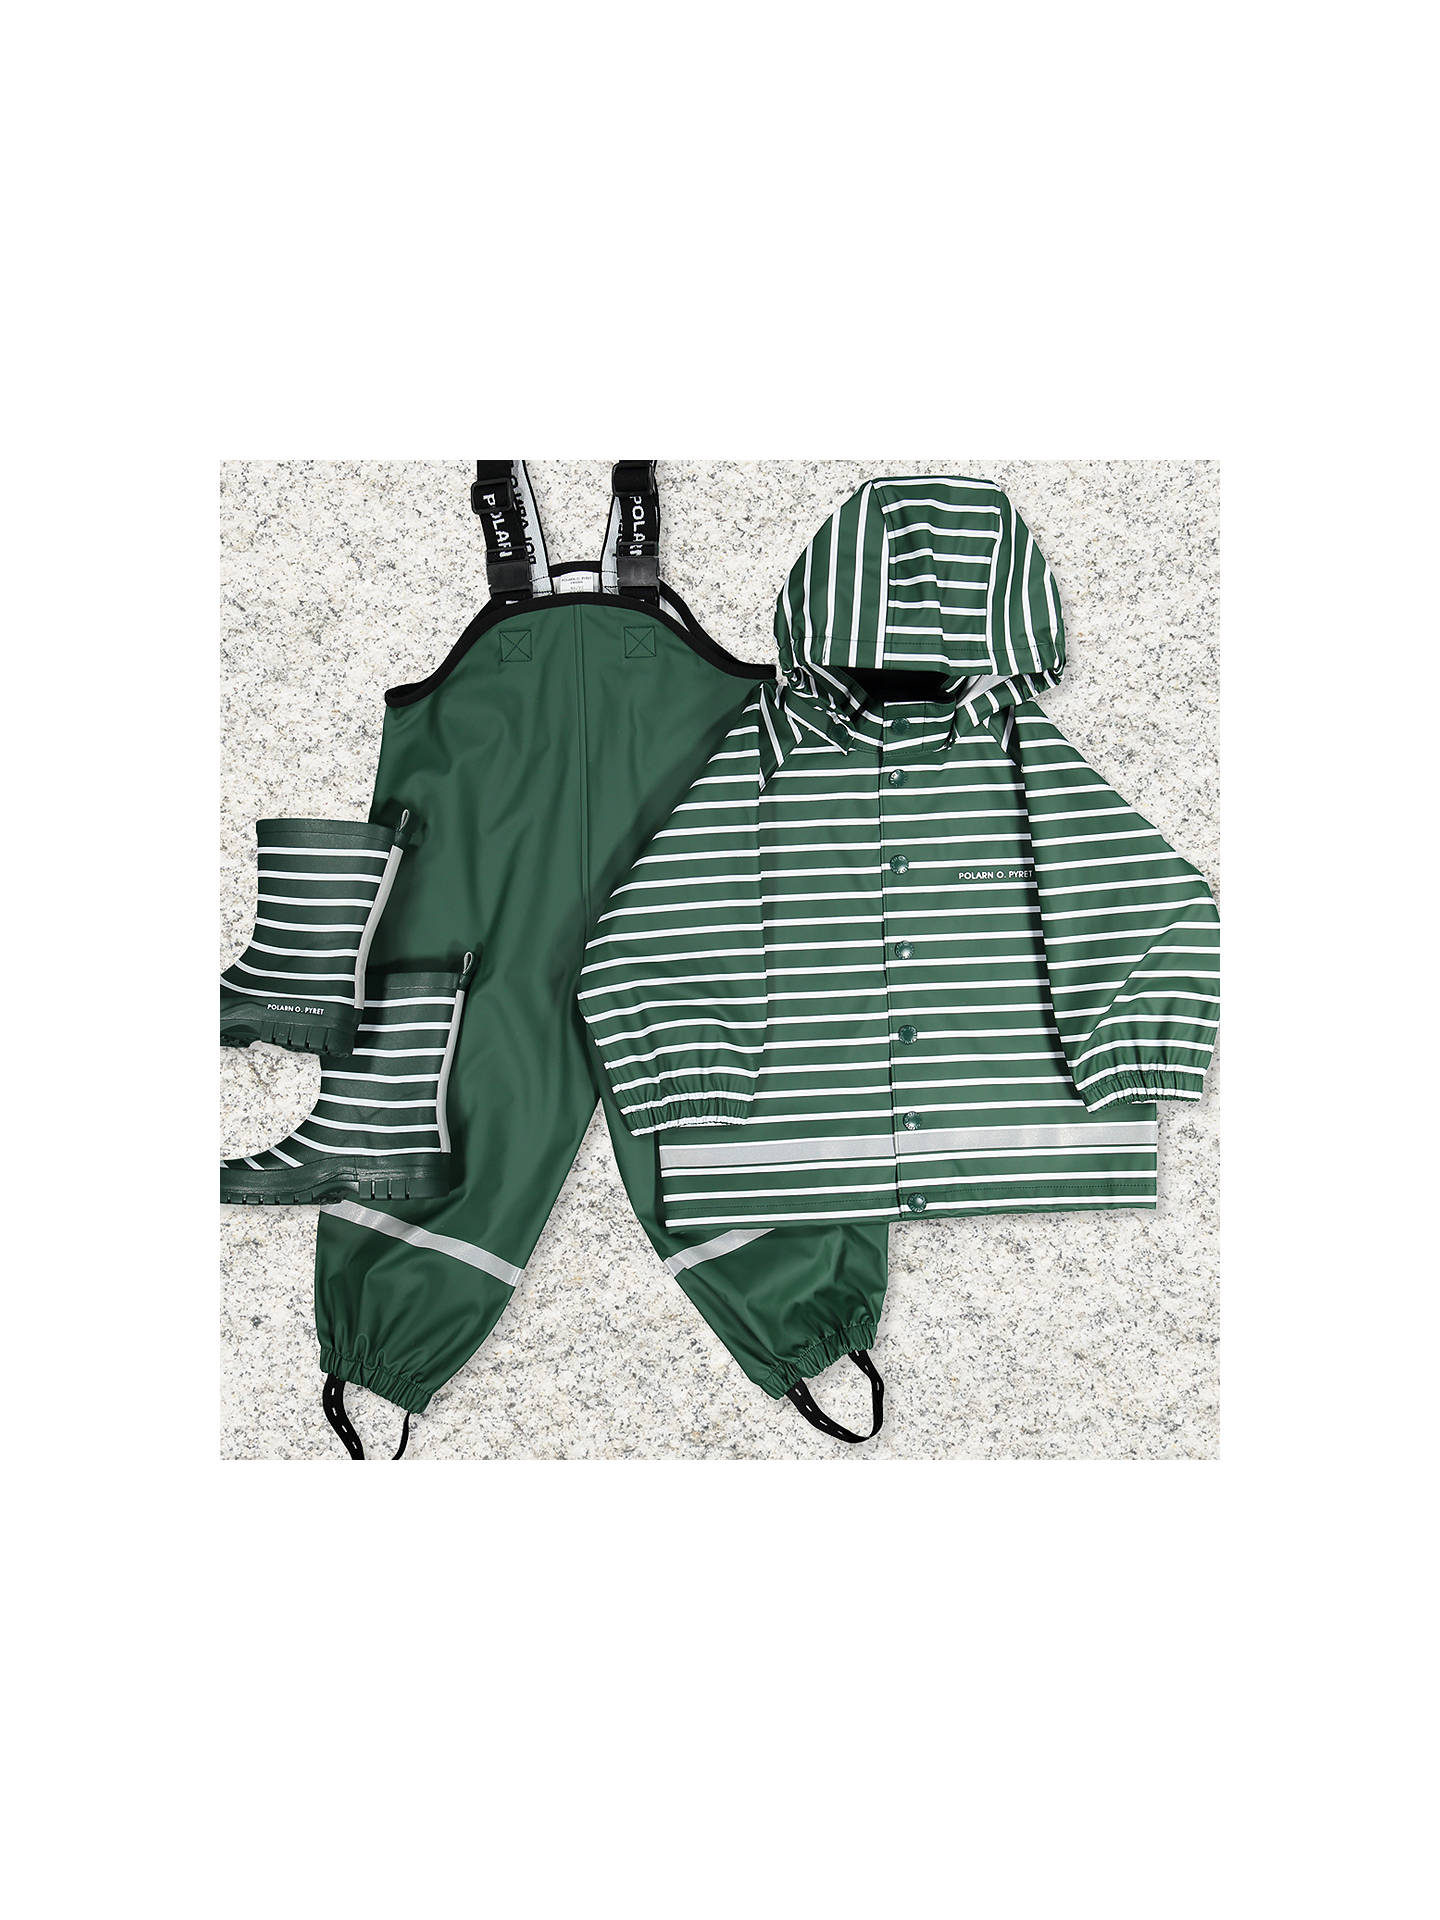 Buy Polarn O. Pyret Children's Rain Trousers, Green, 12-24 months Online at johnlewis.com